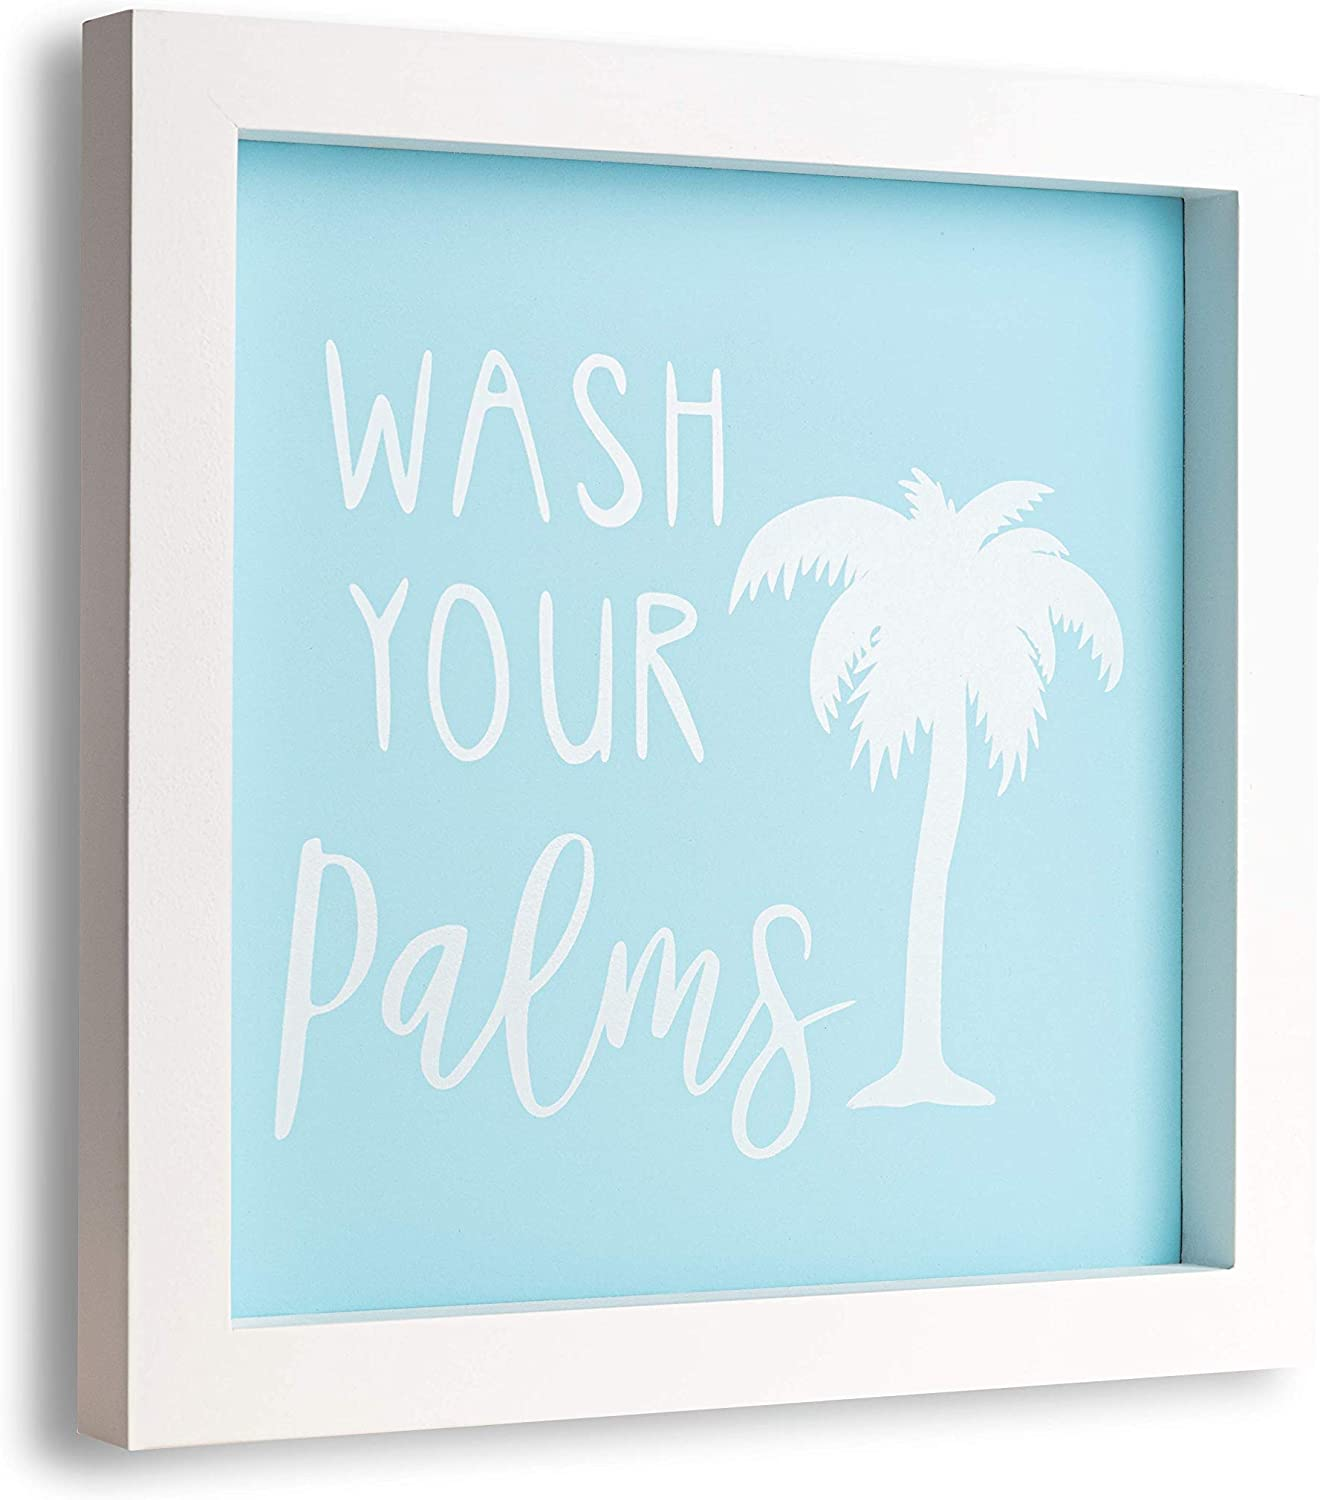 TideAndTales Wash Your Palms Bathroom Wall Decor (Blue) Funny Bathroom Signs - Wooden and Framed Wash Your Hands Sign - Beach Bathroom Decor - Coastal Farmhouse Half Bath Restroom Decor